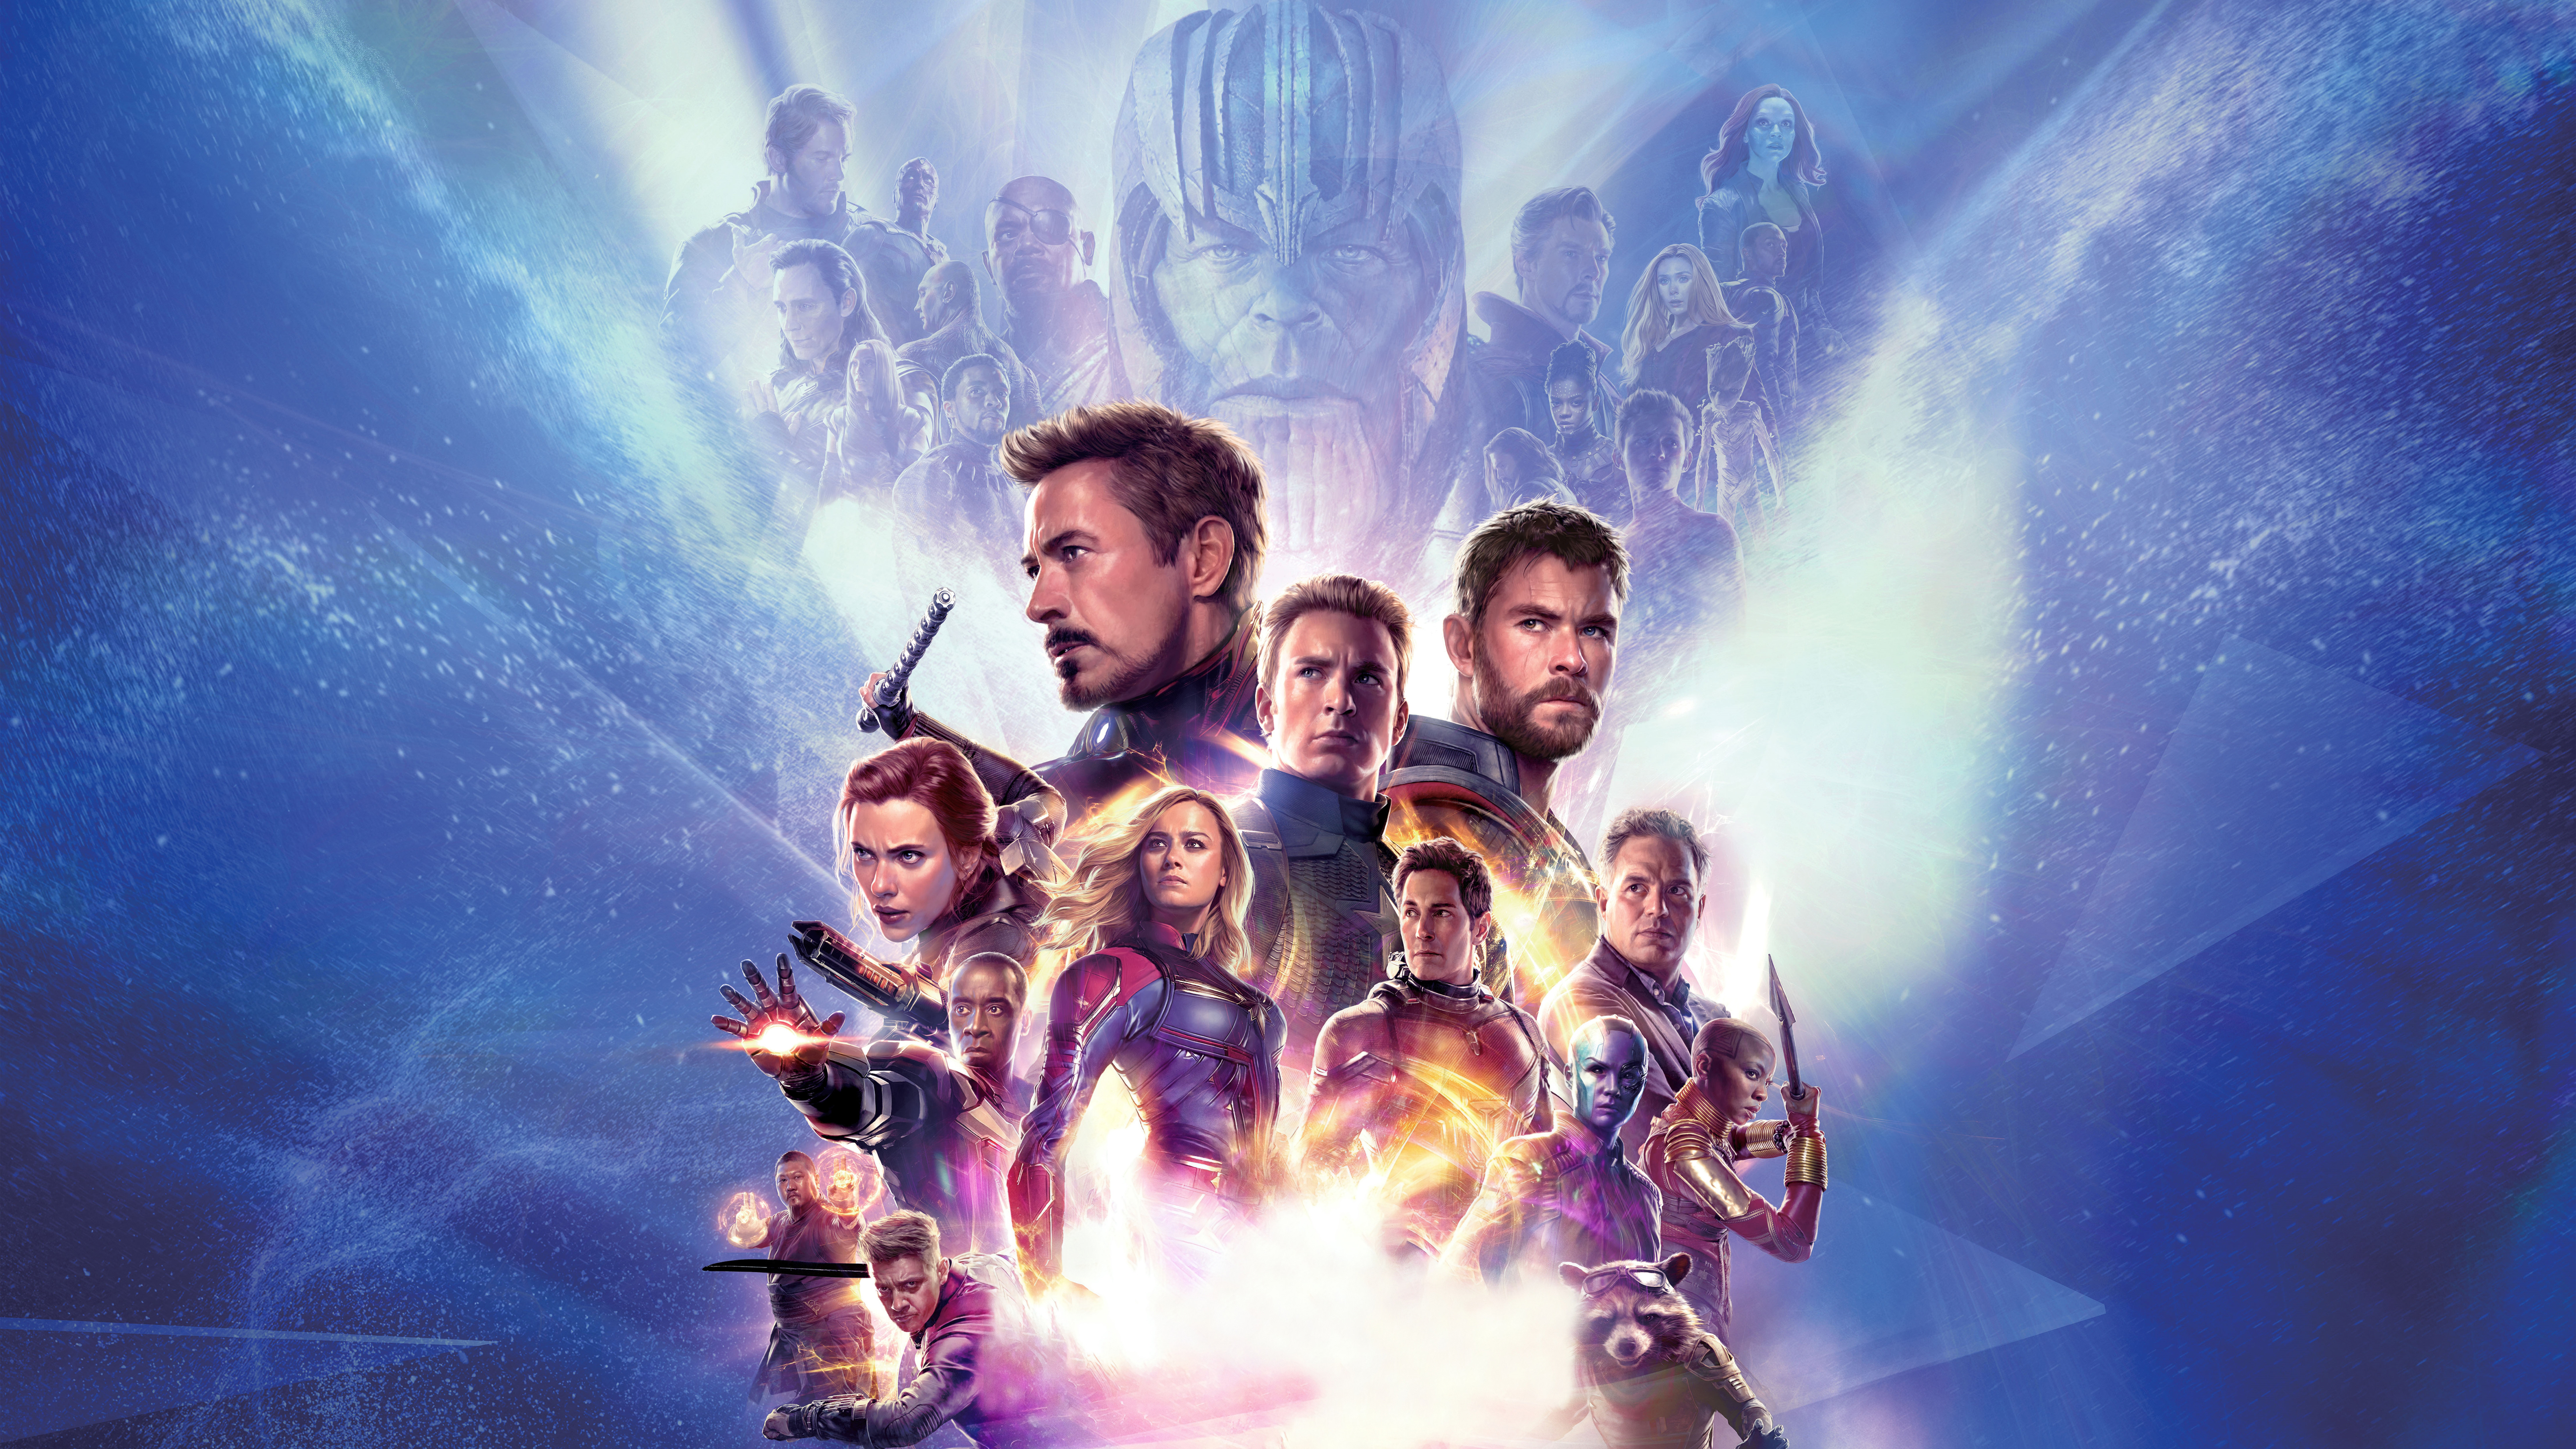 Wallpaper Avengers Endgame